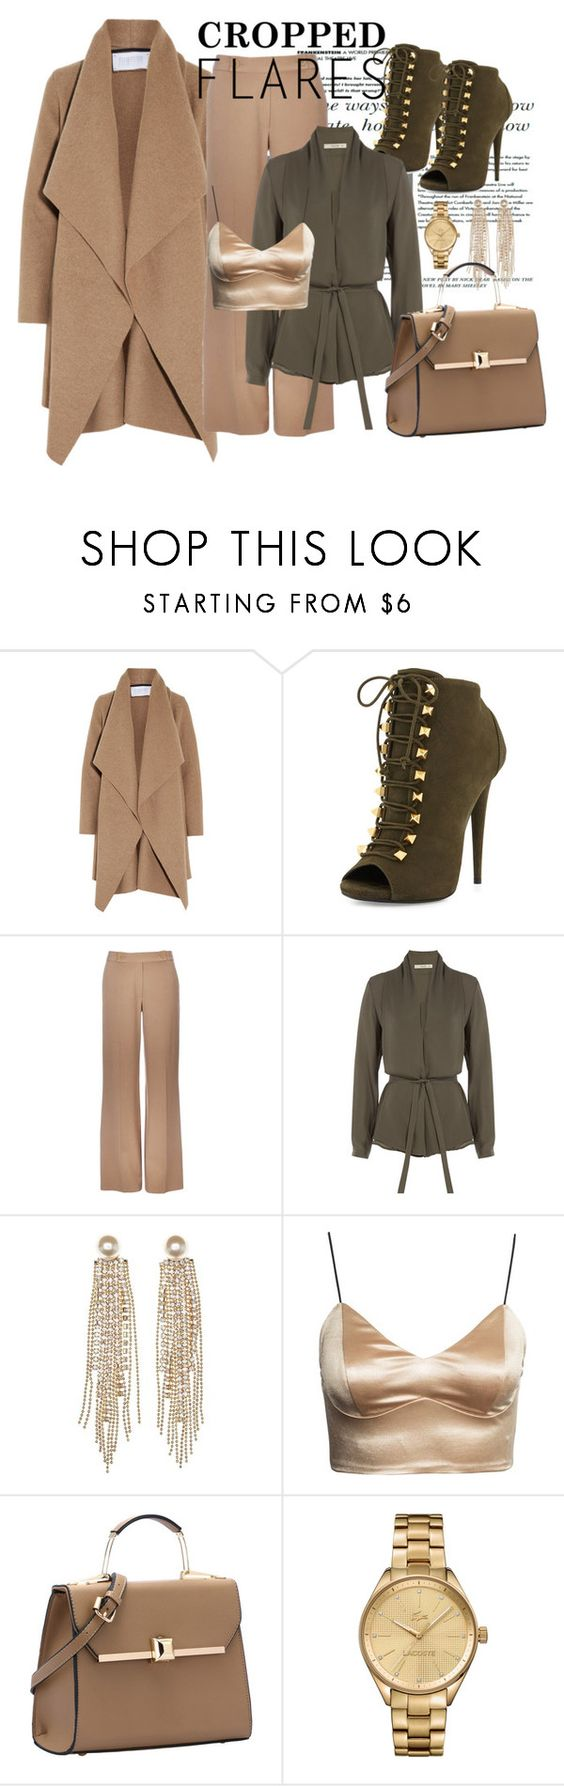 """Would You Wear It: Cropped Flares"" by fashion-tagblog ❤ liked on Polyvore featuring Harris Wharf London, Giuseppe Zanotti, Wallis, Etro, Charlotte Russe, Lacoste, women's clothing, women's fashion, women and female"